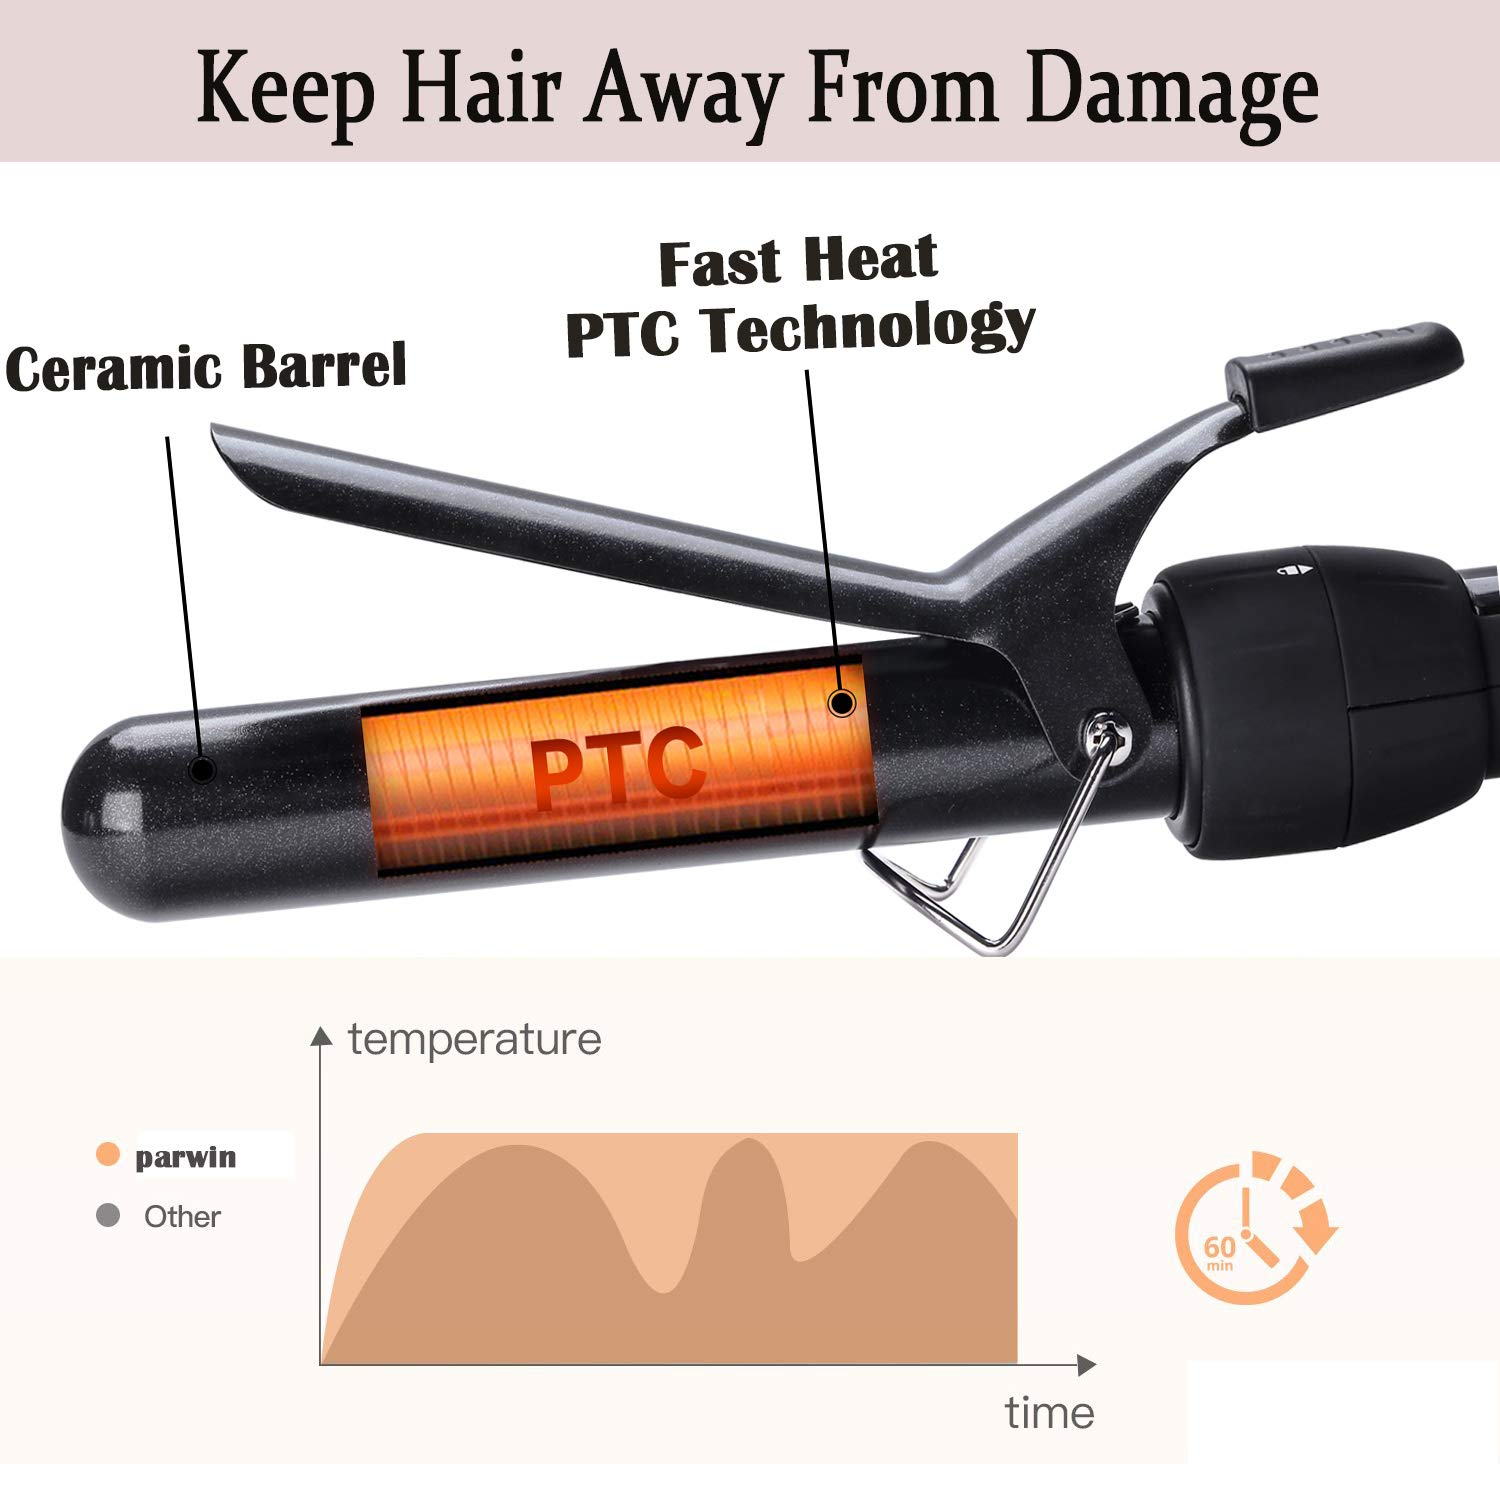 PARWIN BEAUTY Curling Wand 5 in 1 Professional Curling Iron Set 0.3 to 1.25 Inch Interchangeable Ceramic Barrels Hair Curling Iron Wand - Hair Curler for All Hair Types with Glove and Travel Case by PARWIN PRO BEAUTY (Image #4)